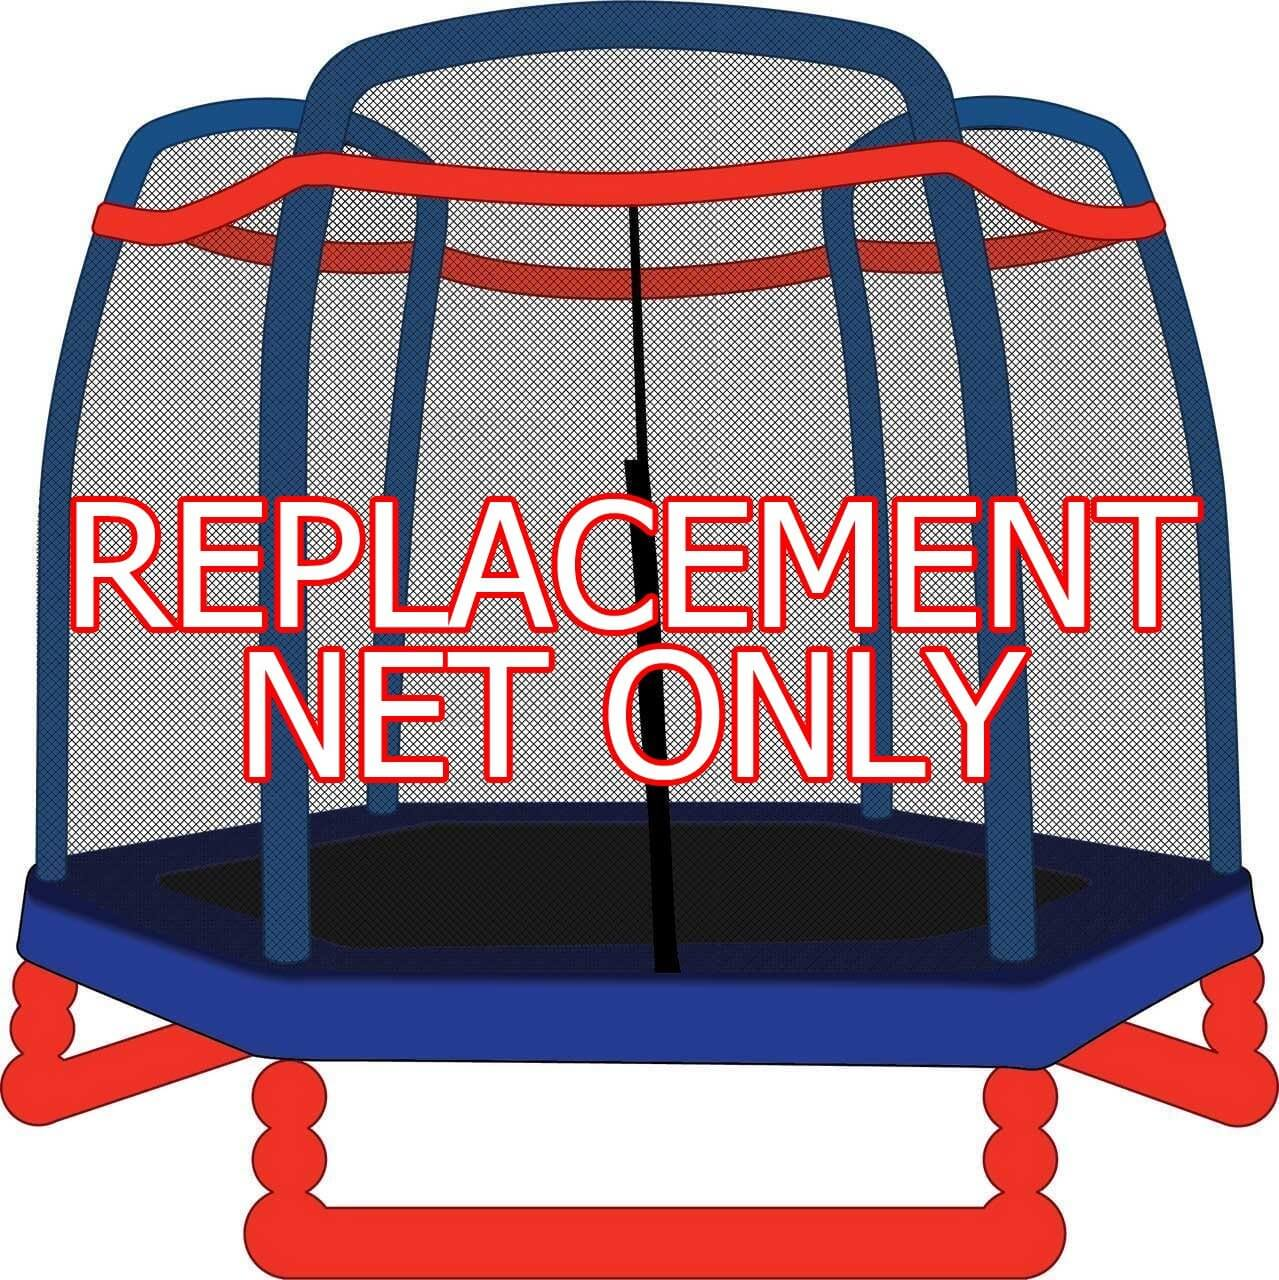 If You Need Replacement Net For 7ft Trampoline Then Can Find One Made By Skybound And Which Fits Little Tikes Super 7